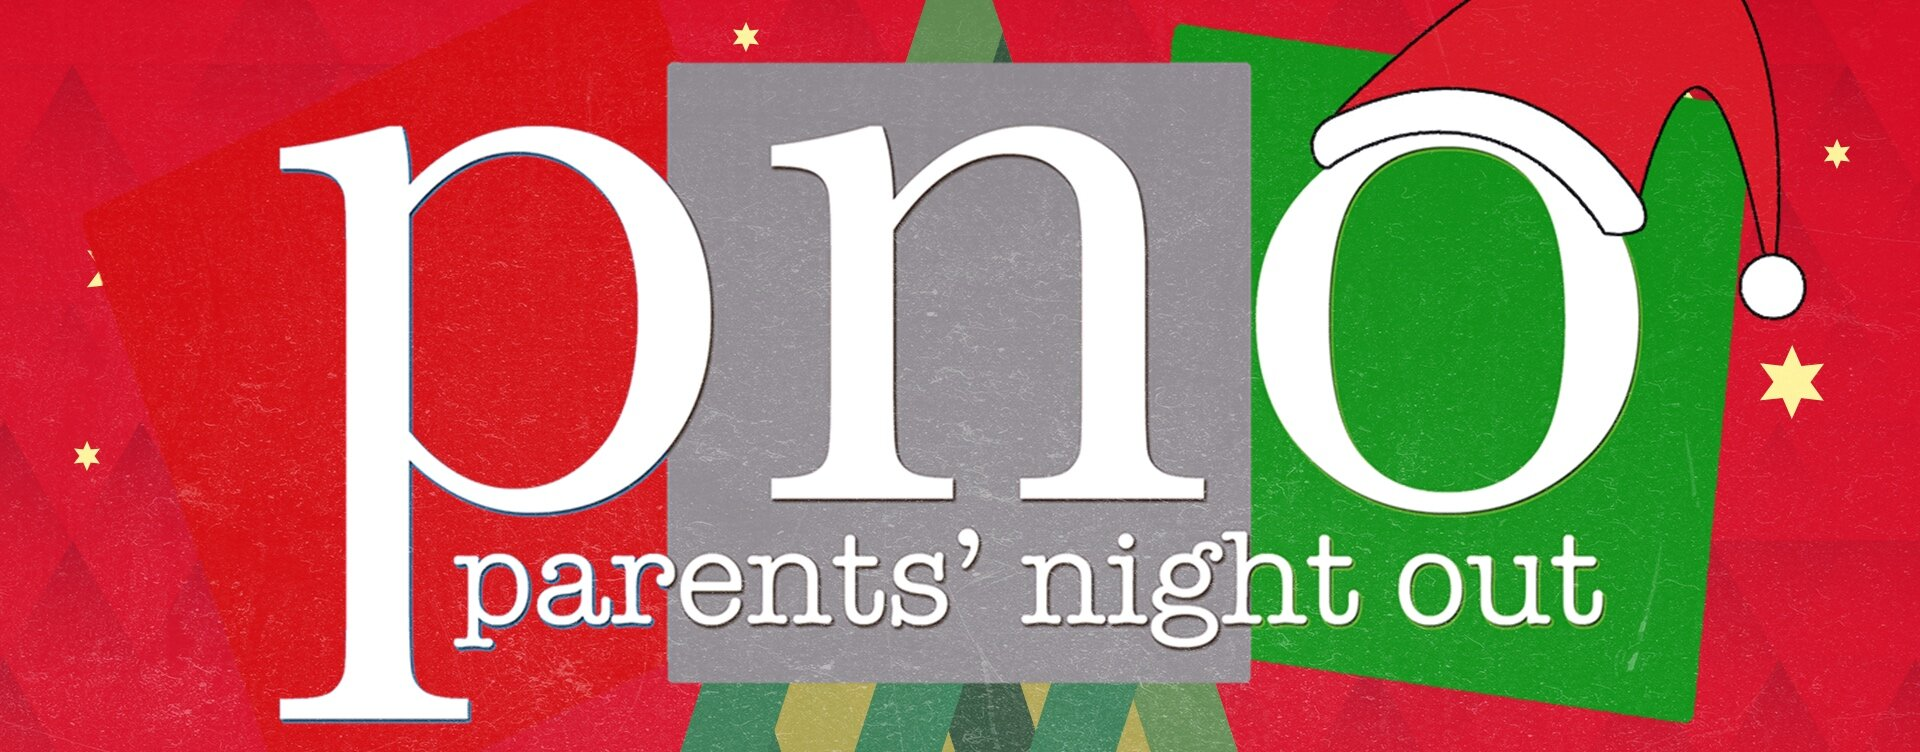 Parents+night+out%3AChristmas+party.jpg